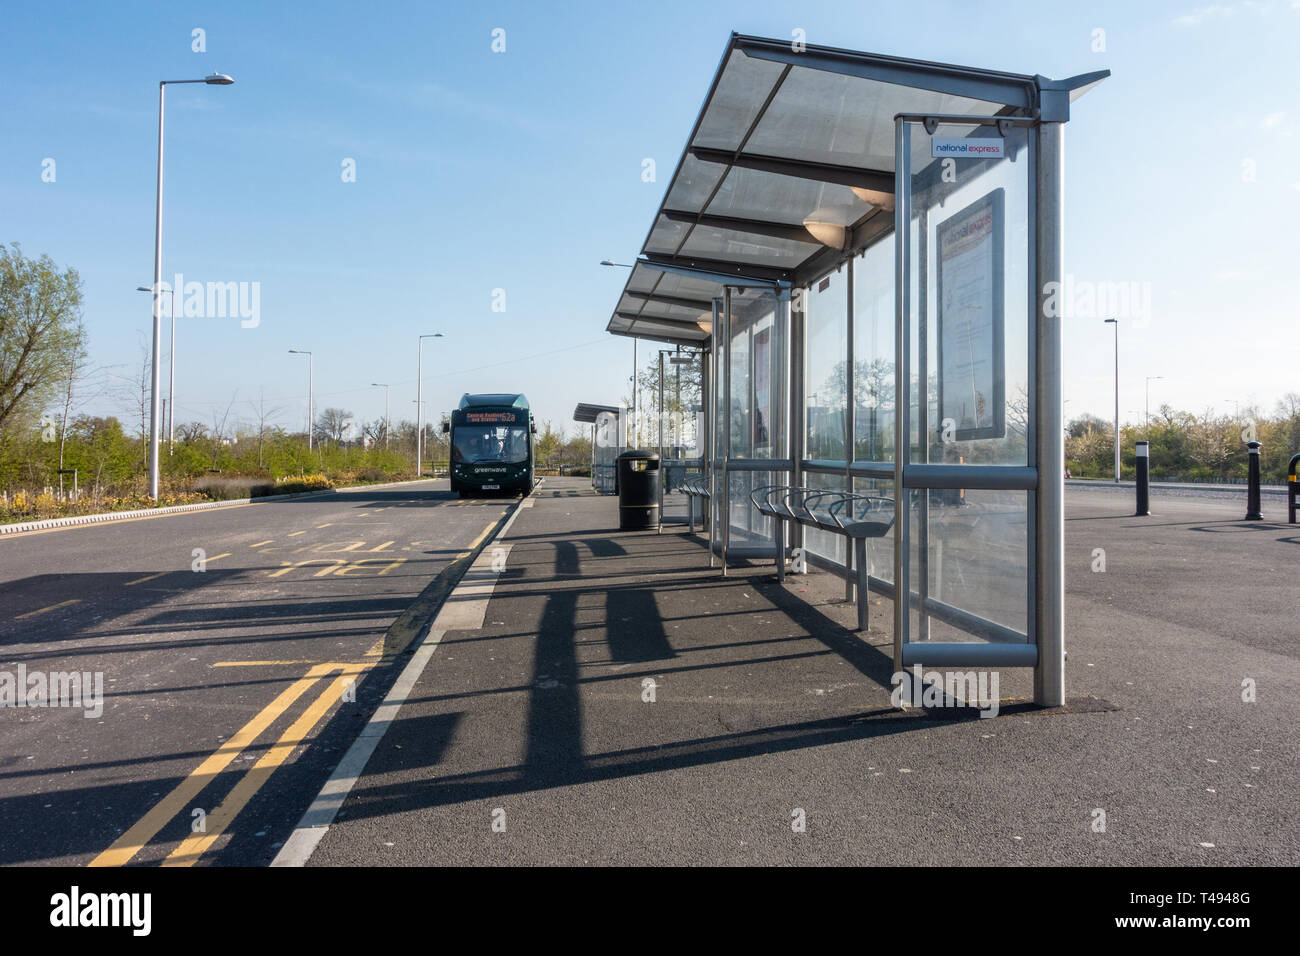 Bus shelters at Mereoak Park and Ride in reading, Berkshire, UK - Stock Image